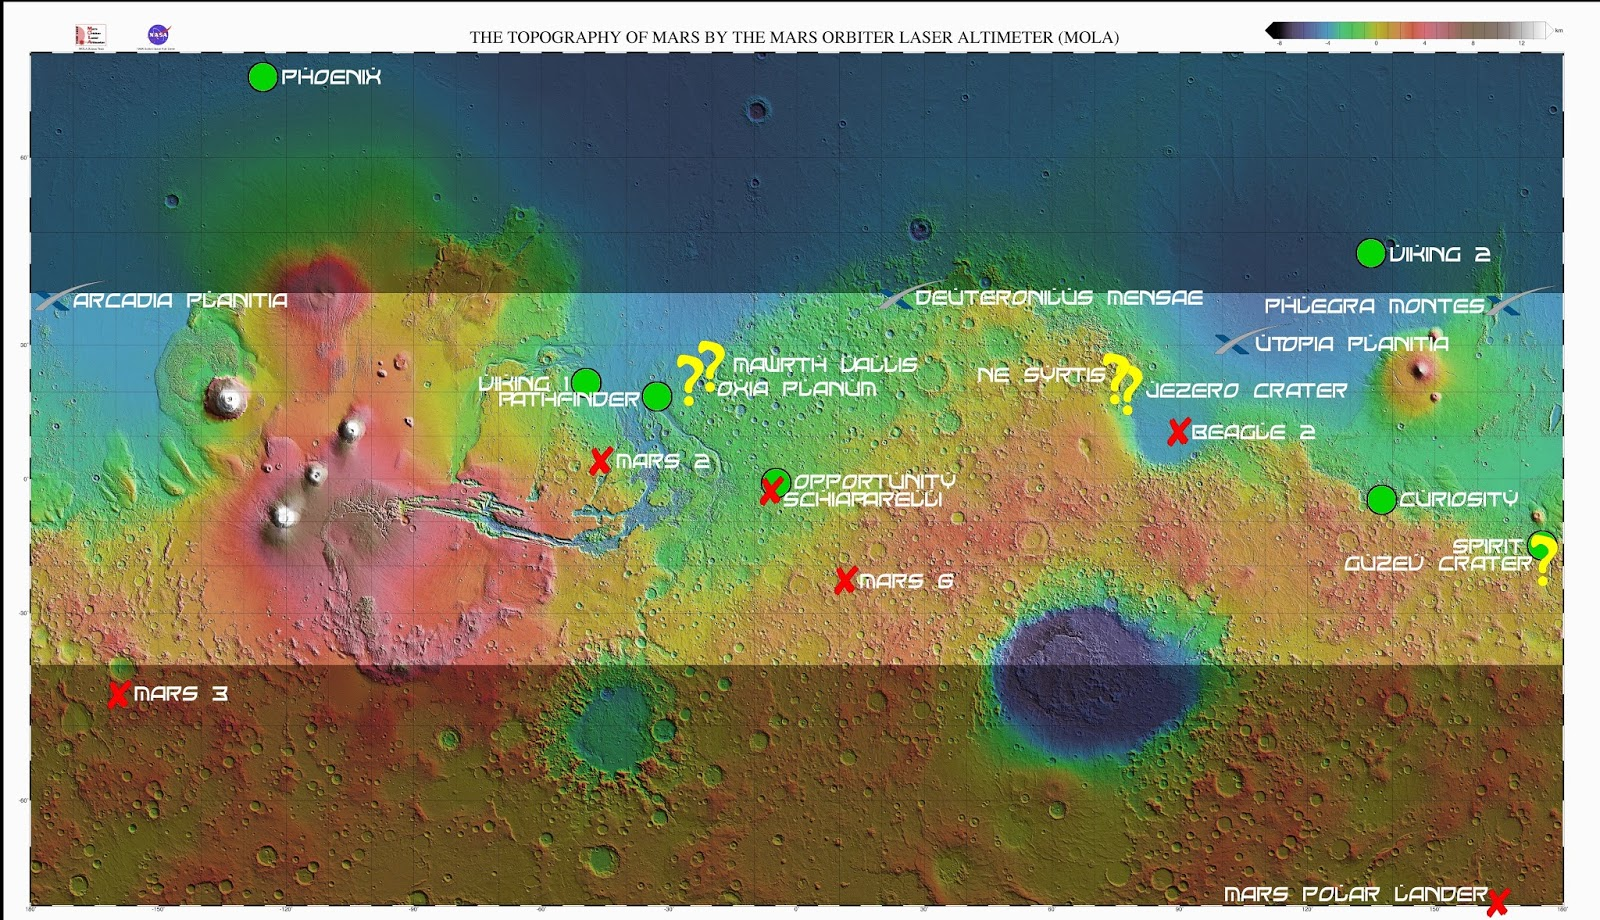 Map of possible landing sites for Red Dragon and Mars2020/ExoMars missions